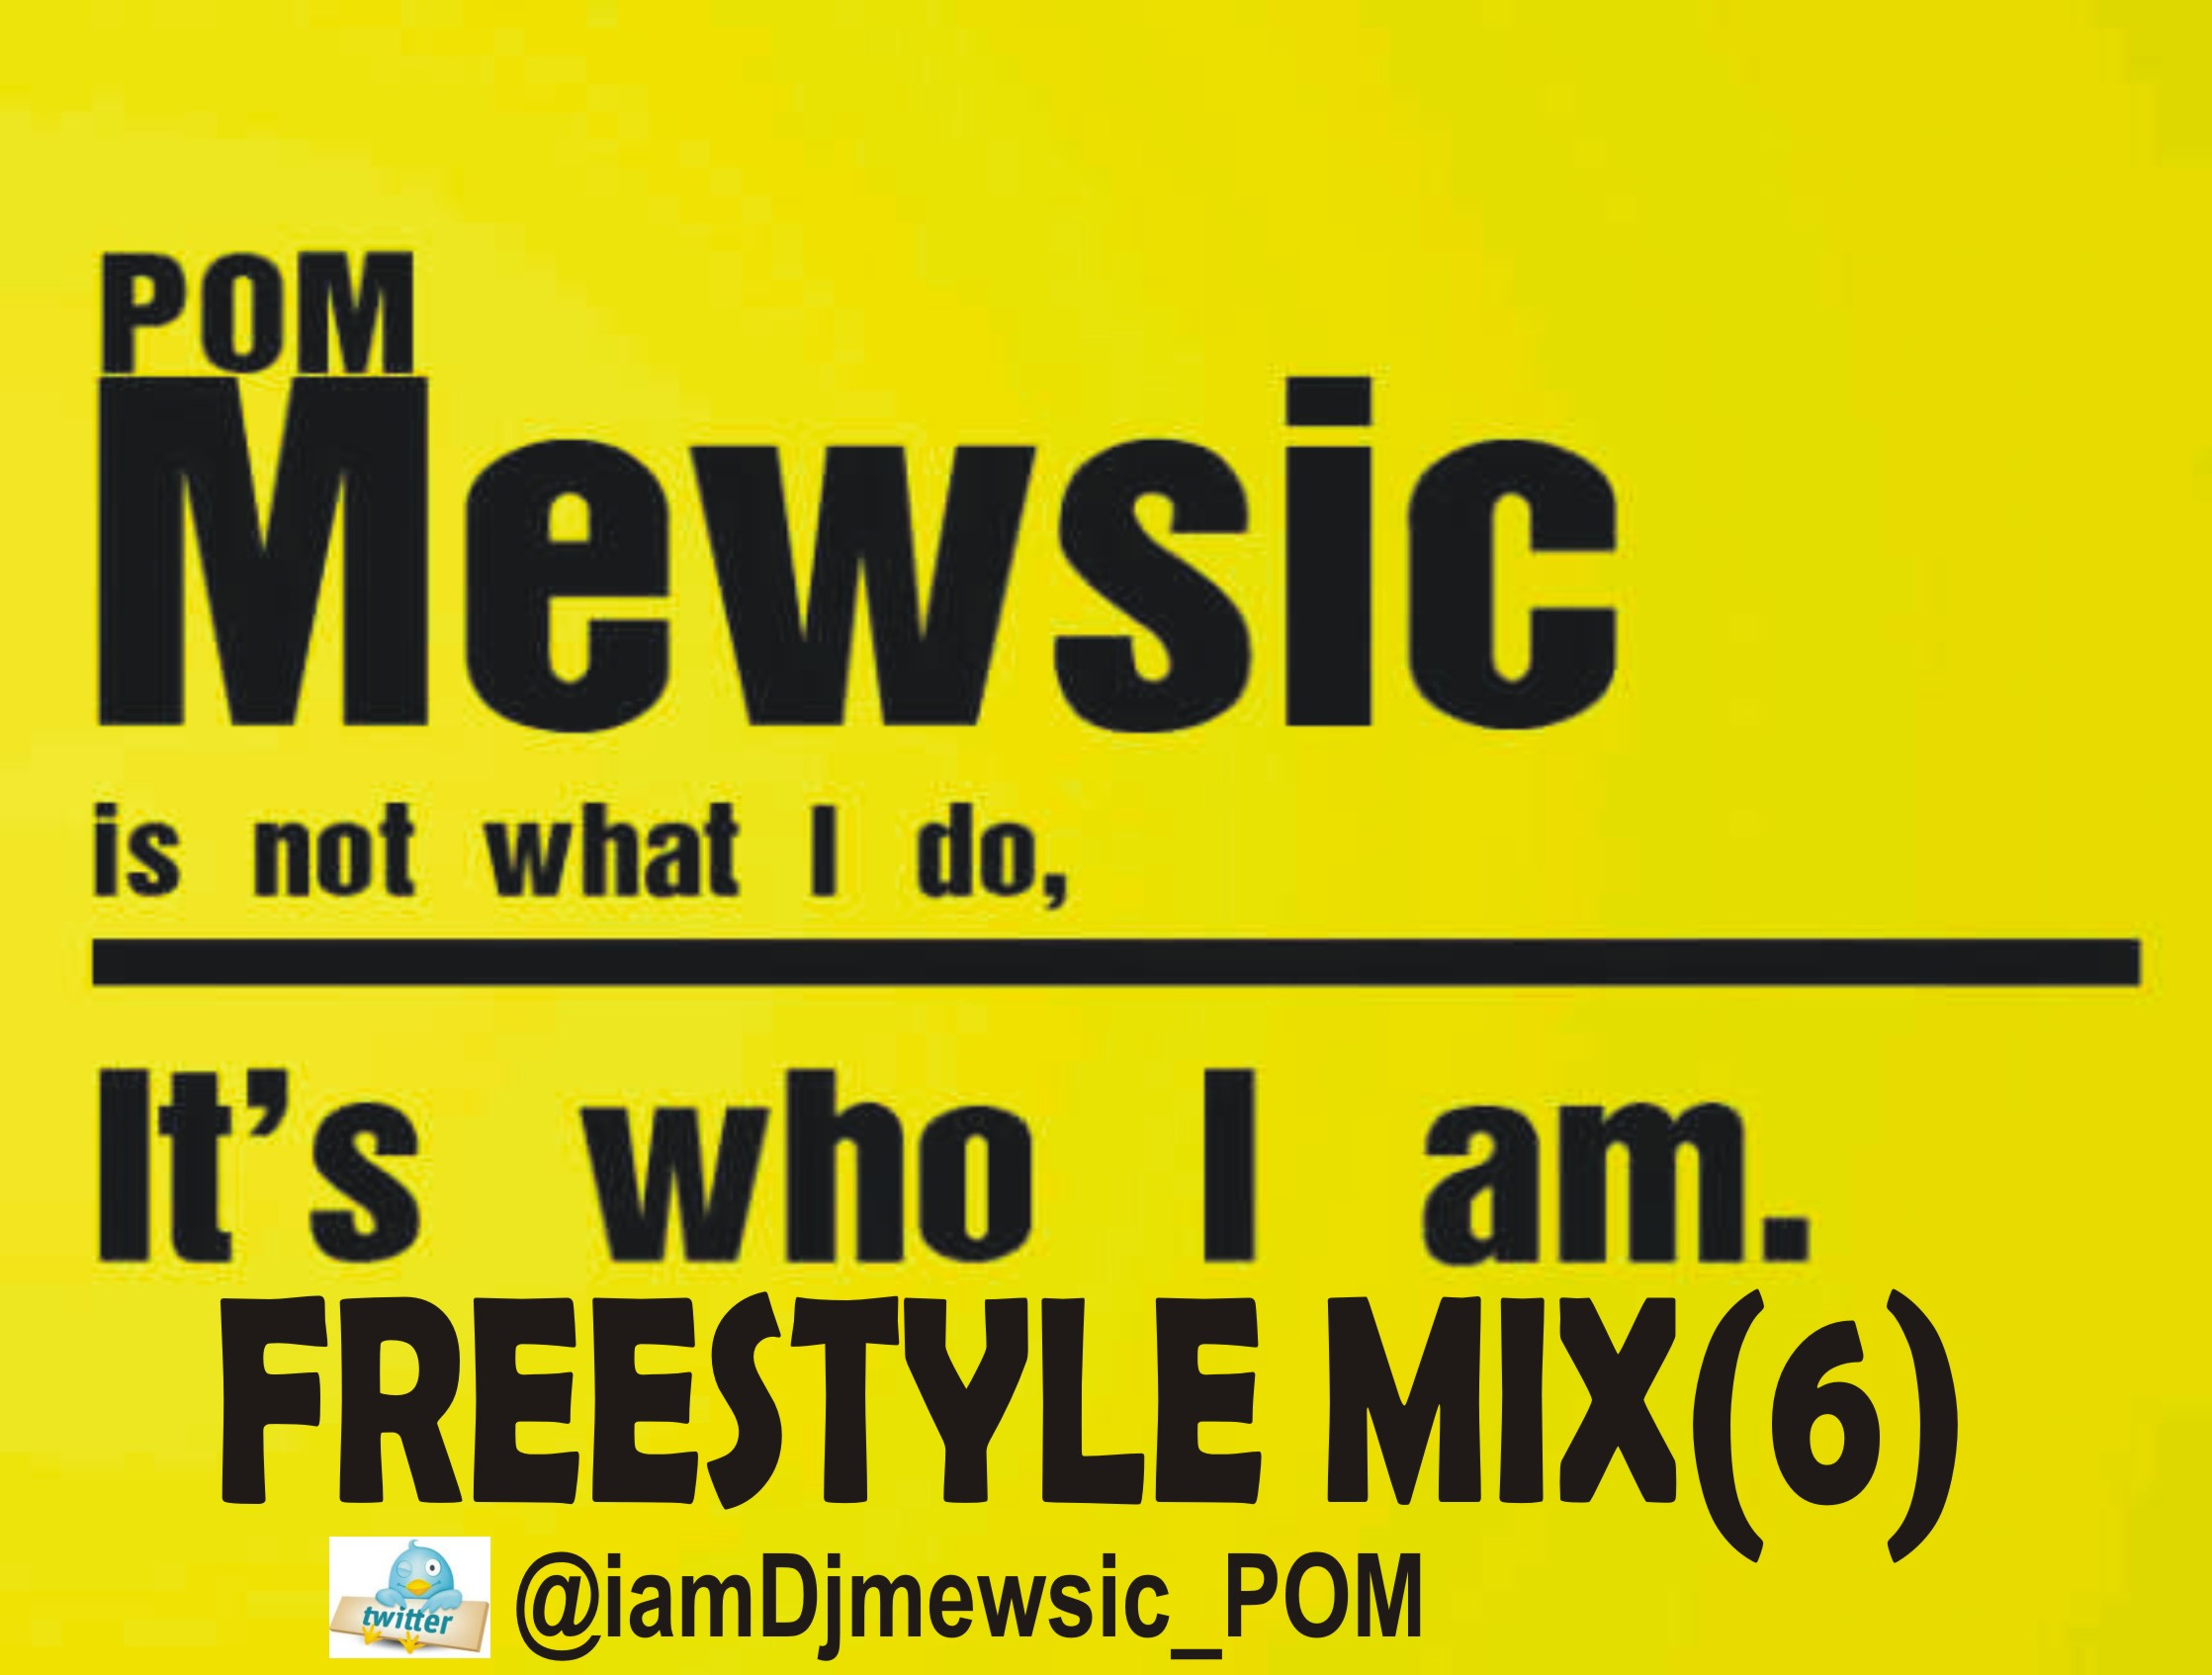 FREESTYLE MIX 6